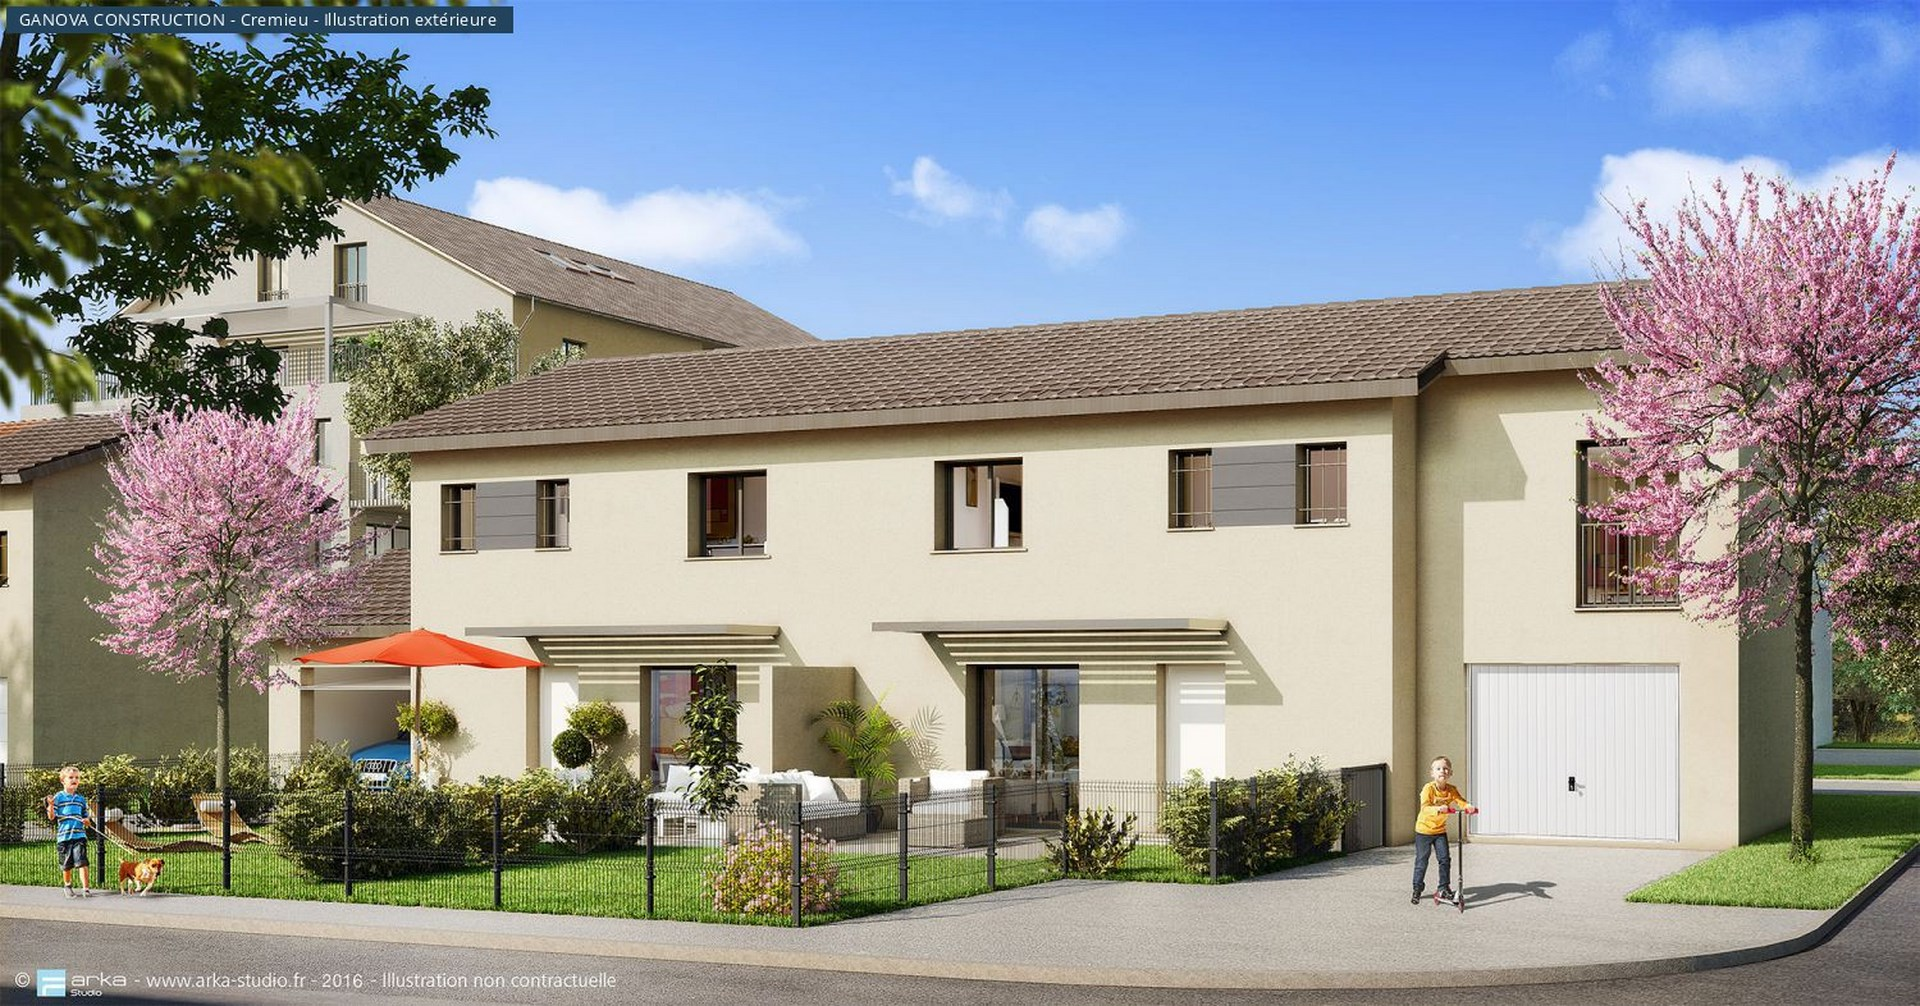 Prix construction maison contemporaine m2 menuiserie for Prix construction m2 2015